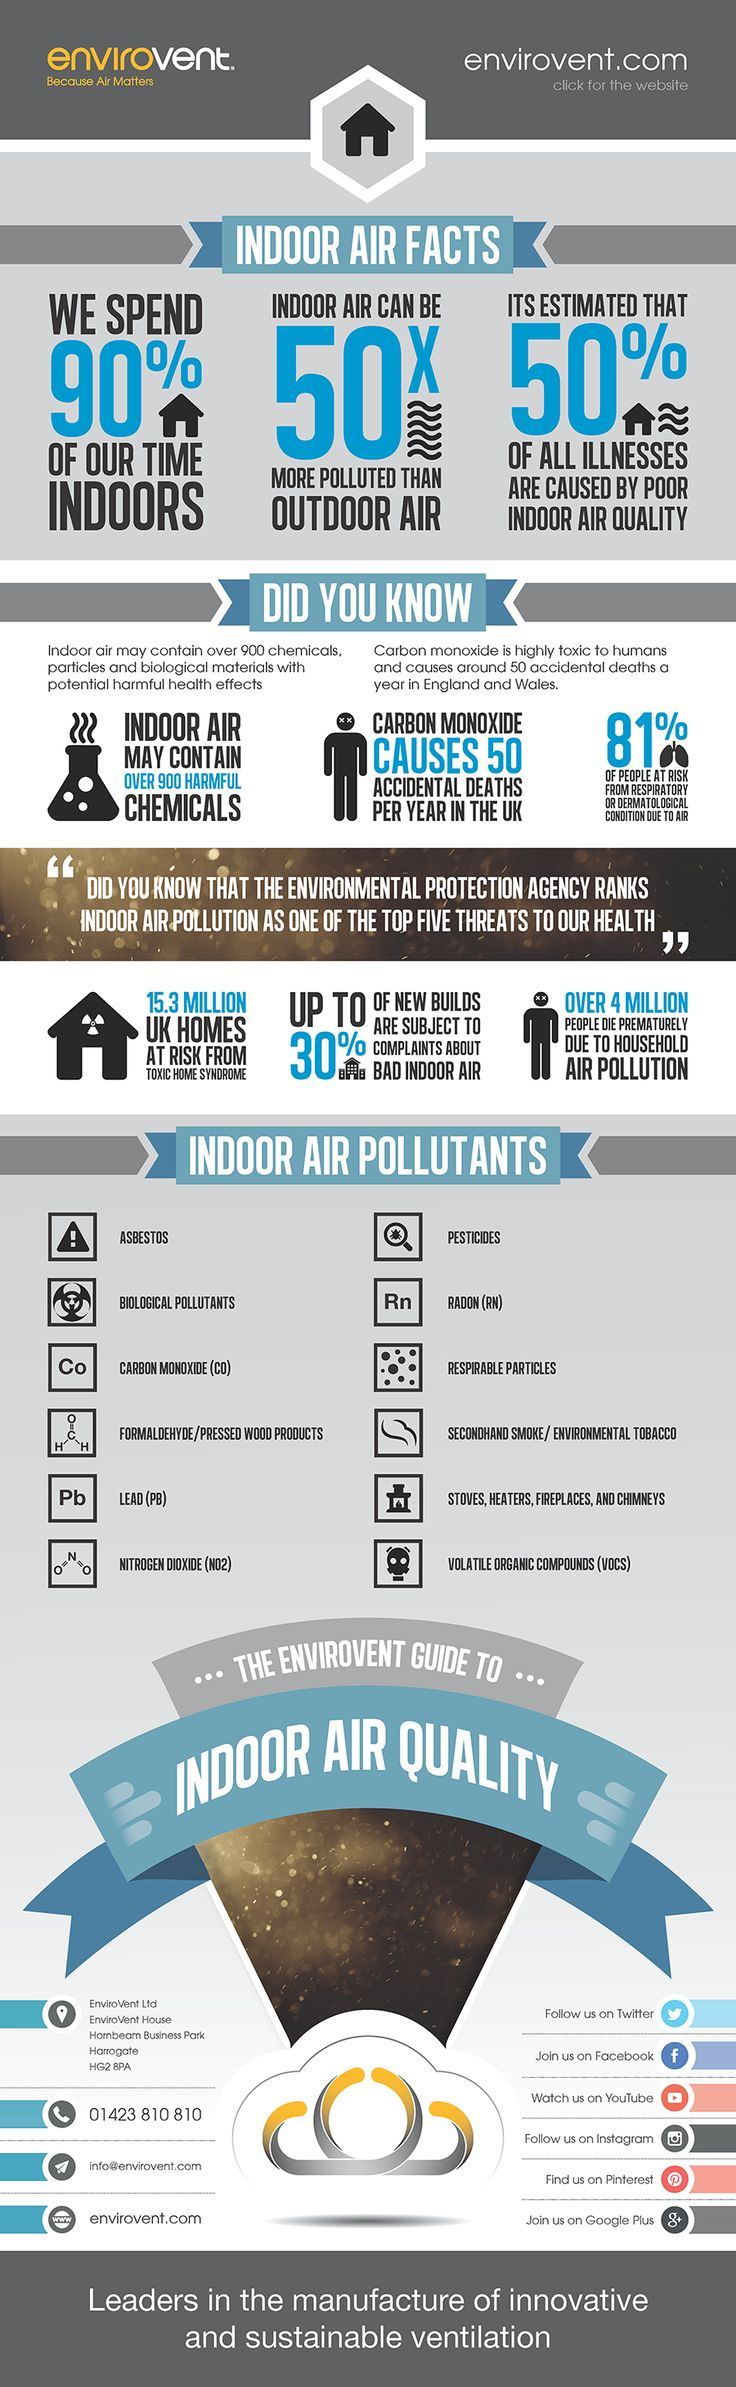 Car interior air quality - Best 20 Indoor Air Quality Ideas On Pinterest Air Cleaning Plants Indoor House Plants And Best Indoor Plants